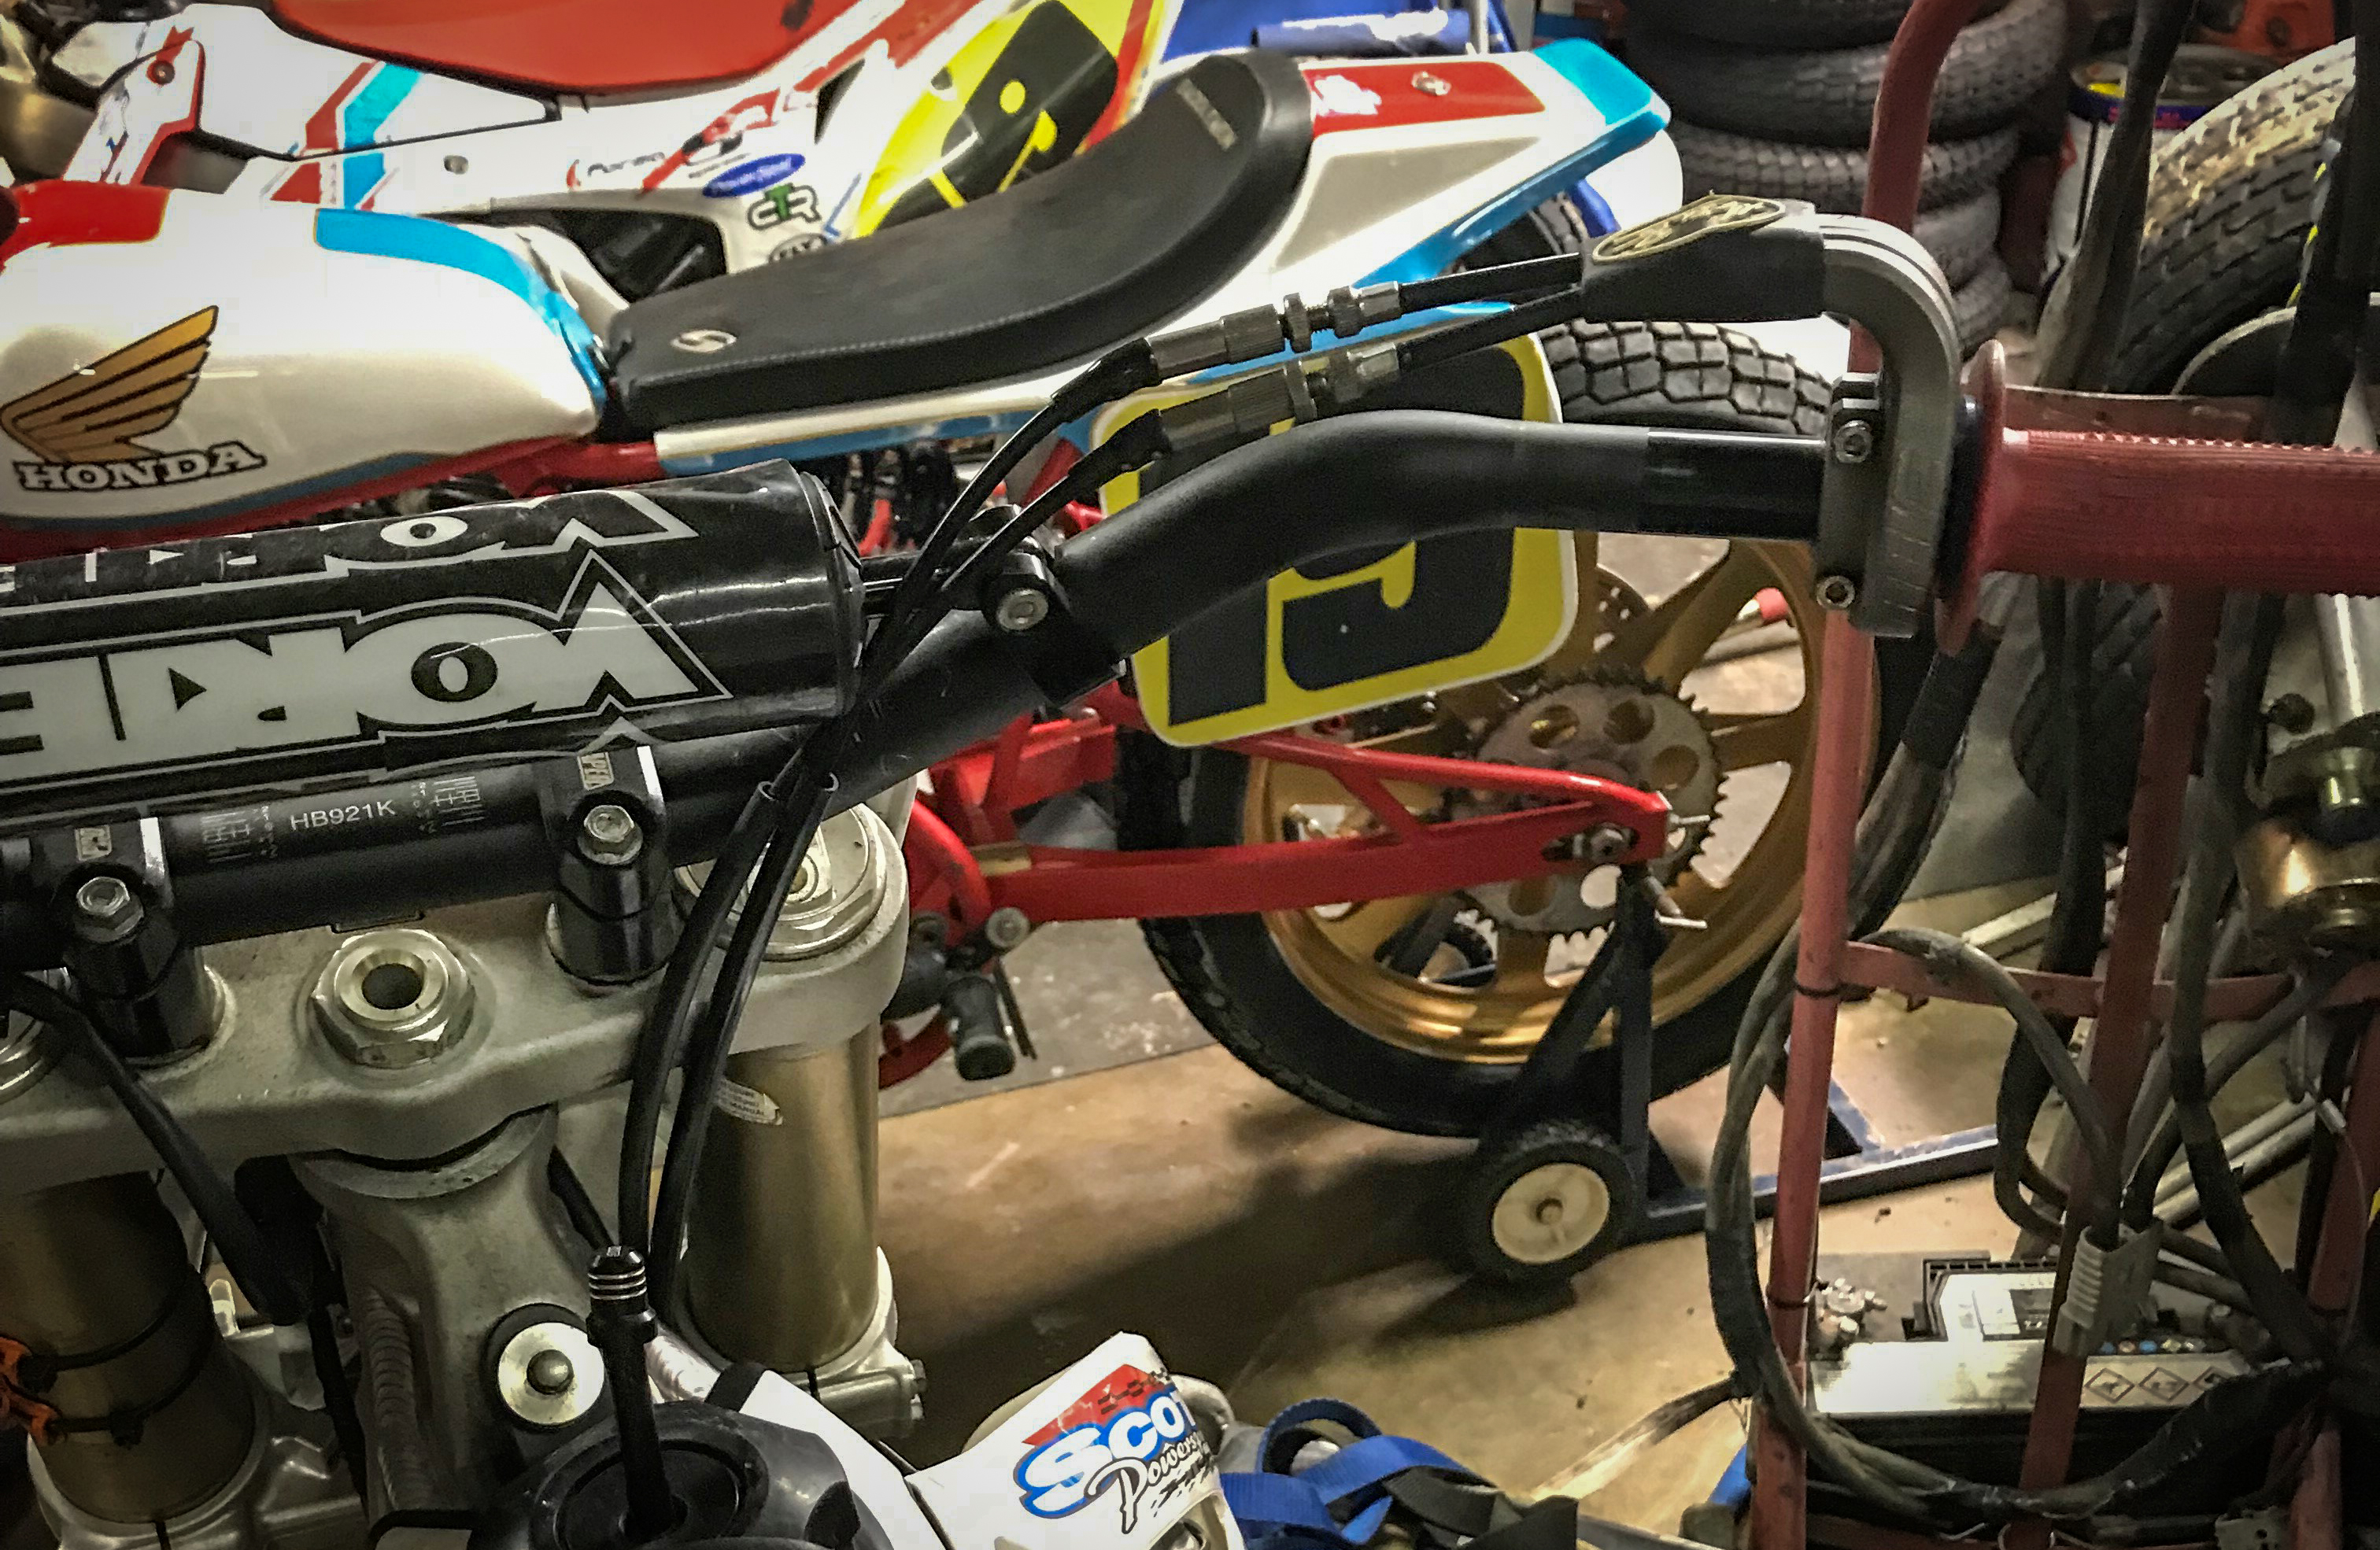 The Ins and Outs of Converting a Motocross Bike to a Flat